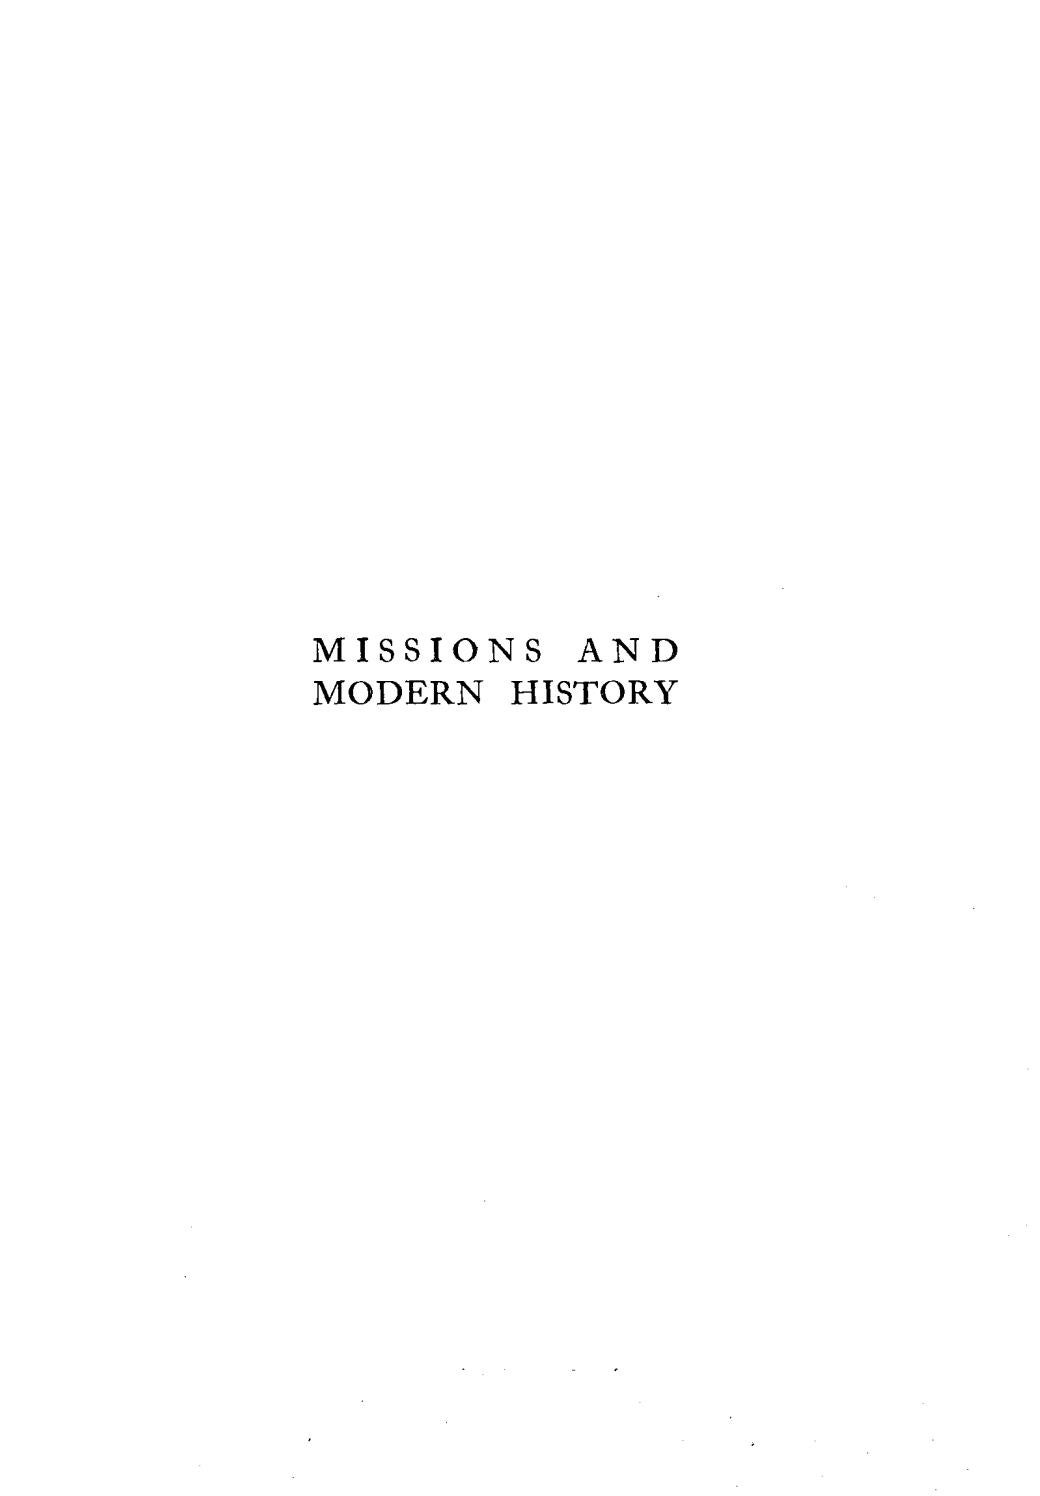 Robert E  Speer, Missions and Modern History, Volume 1